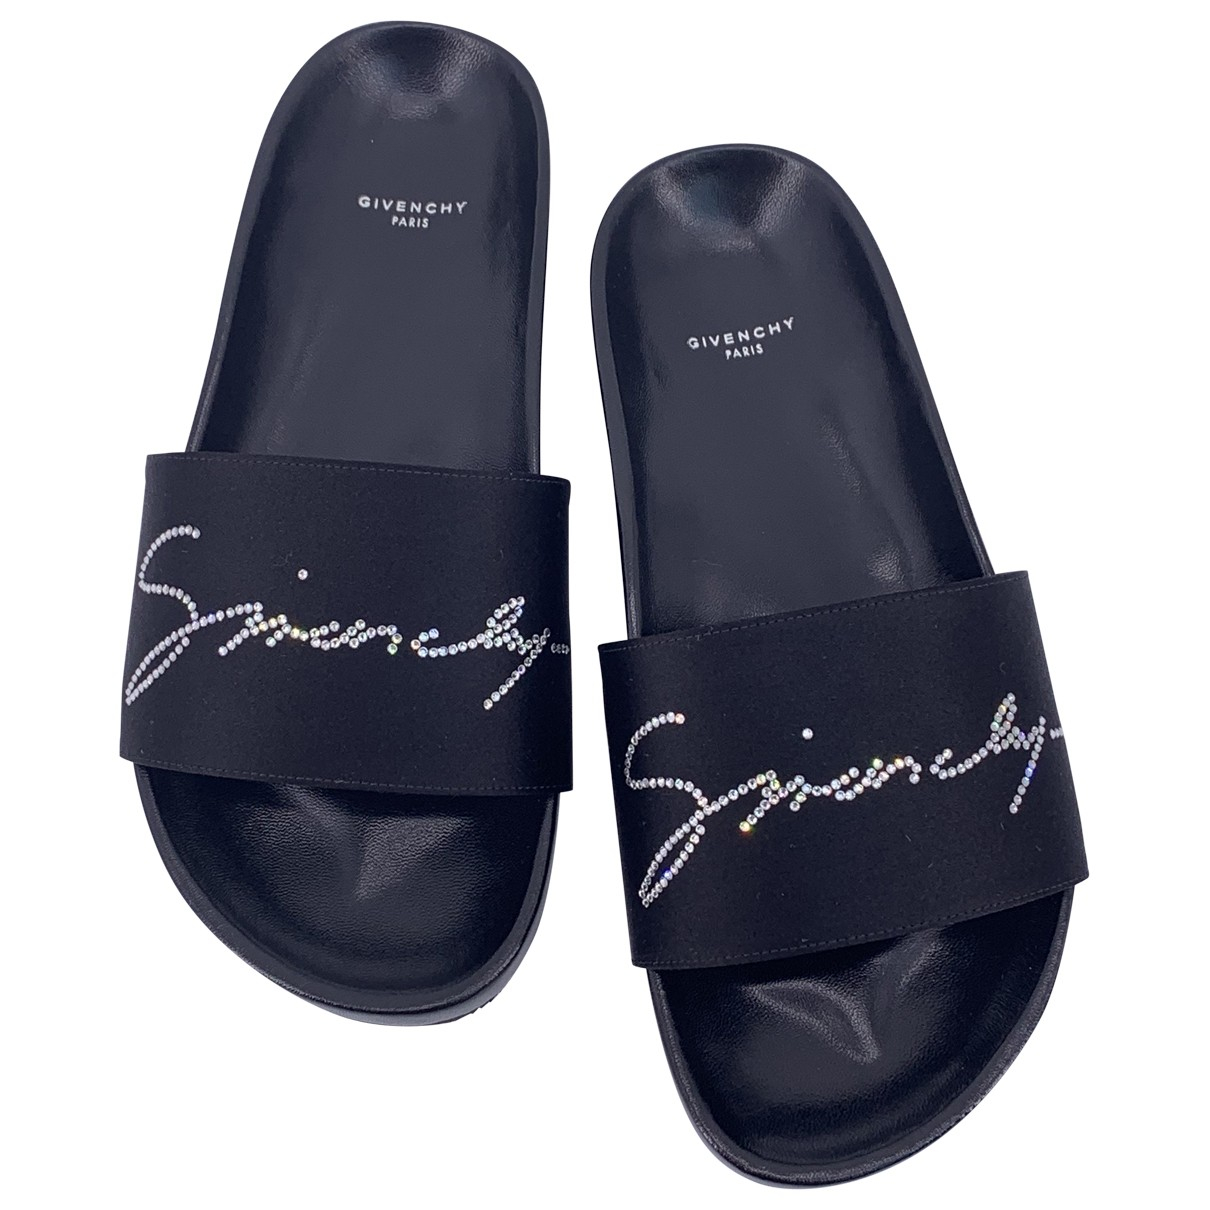 Givenchy \N Black Rubber Sandals for Women 37 EU